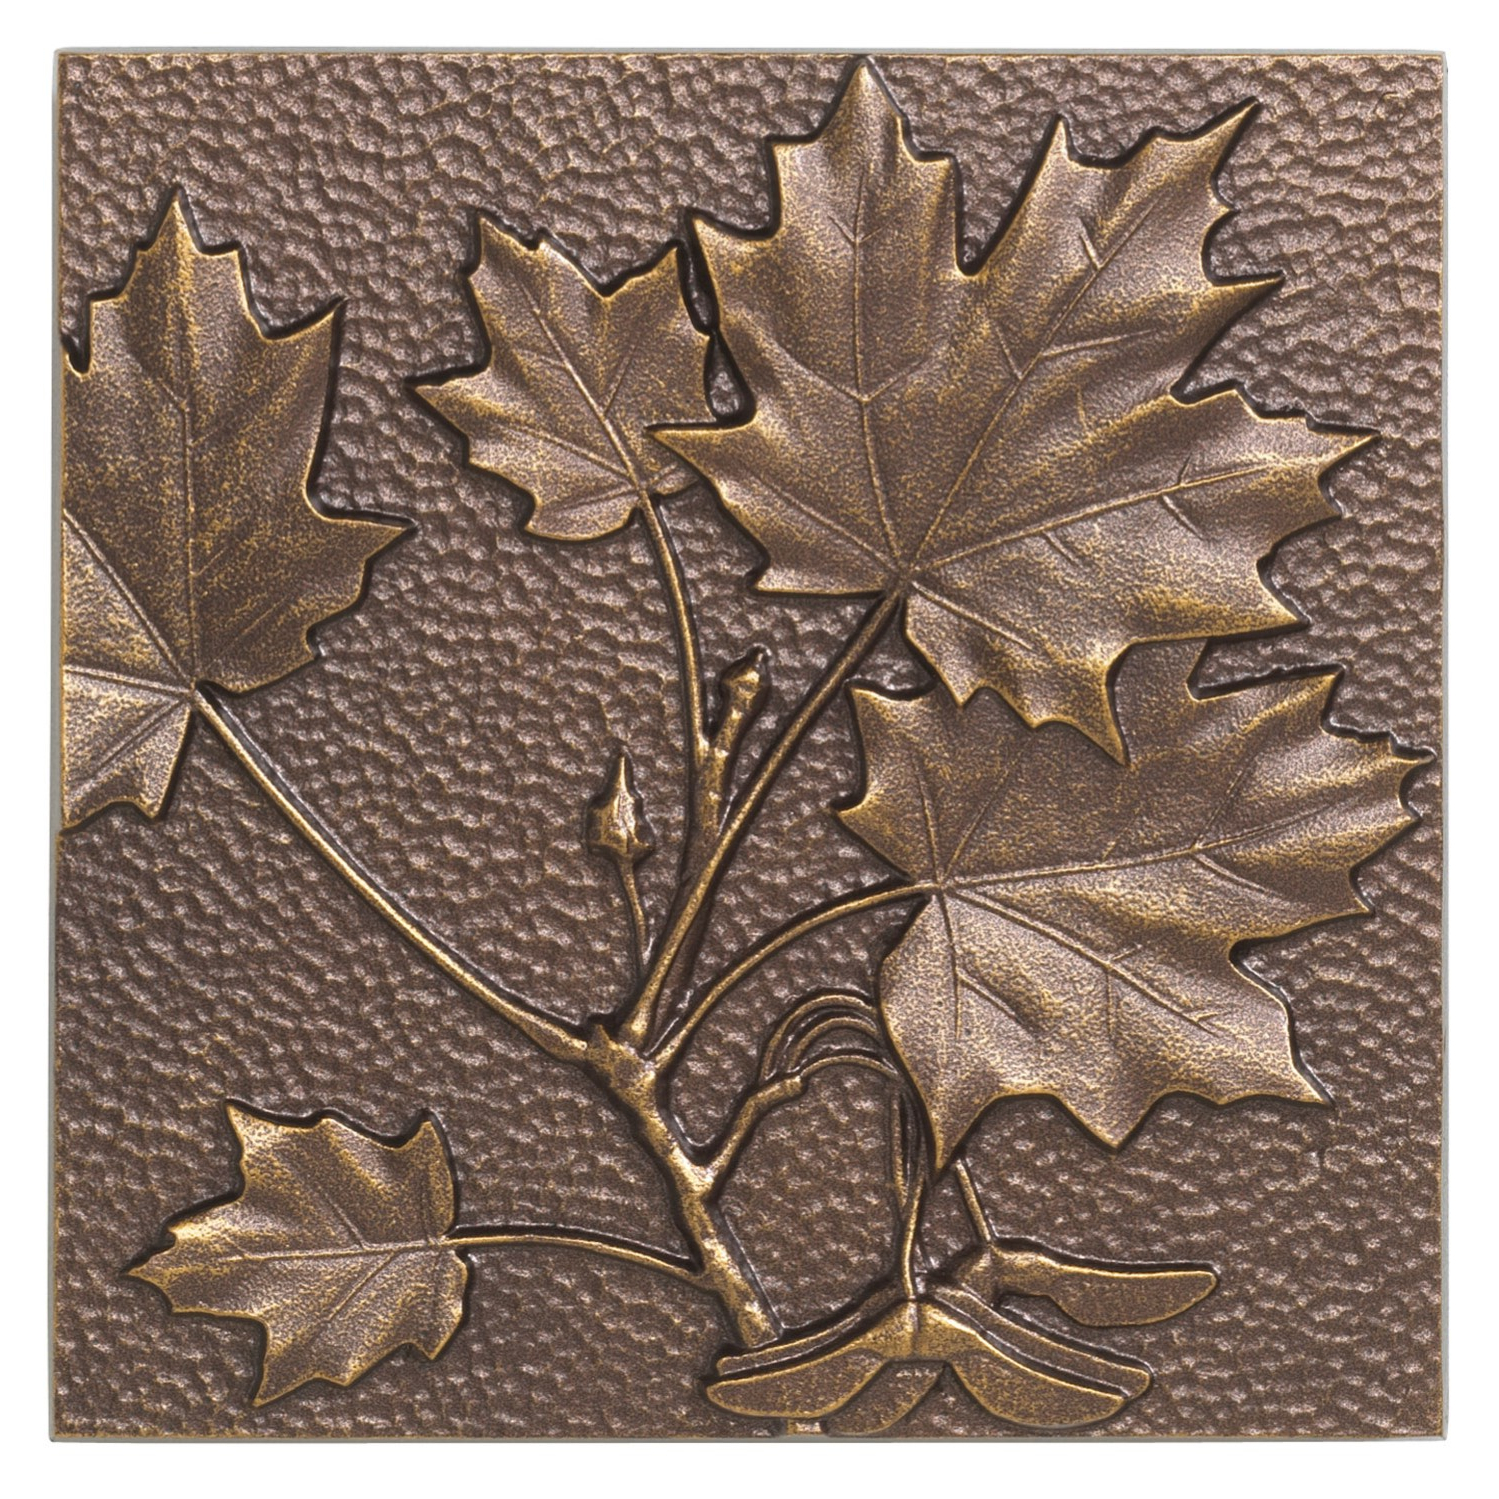 Most Popular Aluminum Maple Leaf Wall Decor Pertaining To Wall Decorations Ideas: Wall Decor Leaf (View 6 of 20)